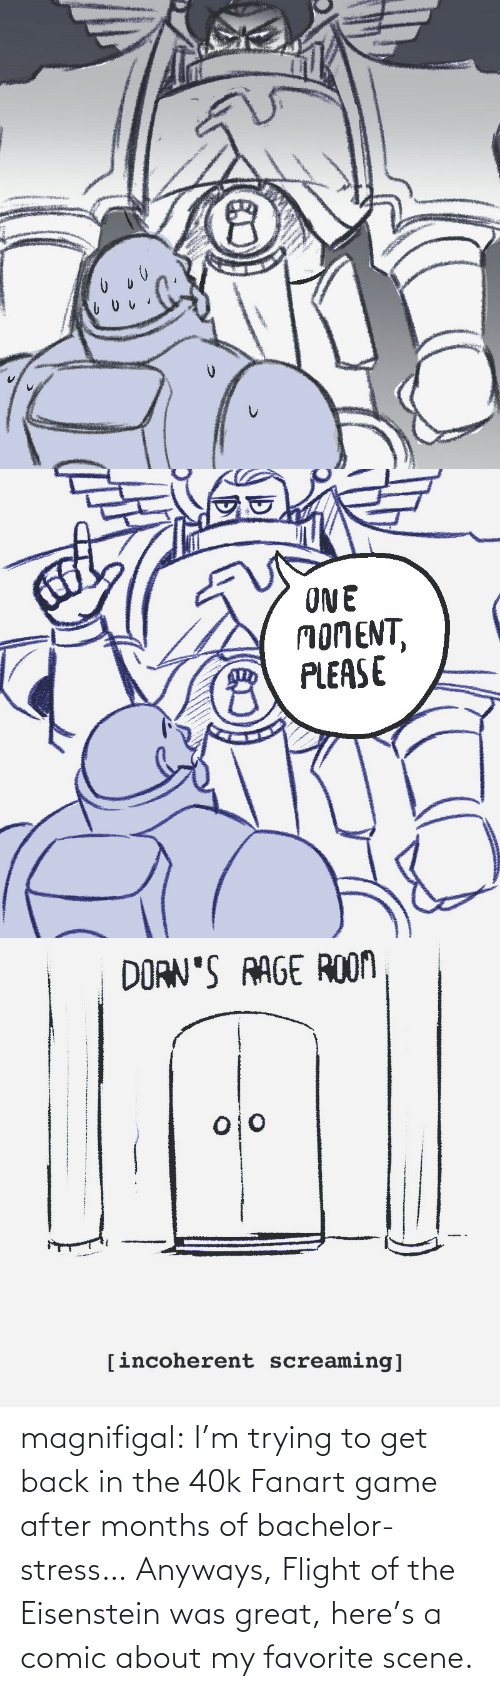 Tumblr, Bachelor, and Blog: magnifigal:  I'm trying to get back in the 40k Fanart game after months of bachelor-stress… Anyways, Flight of the Eisenstein was great, here's a comic about my favorite scene.